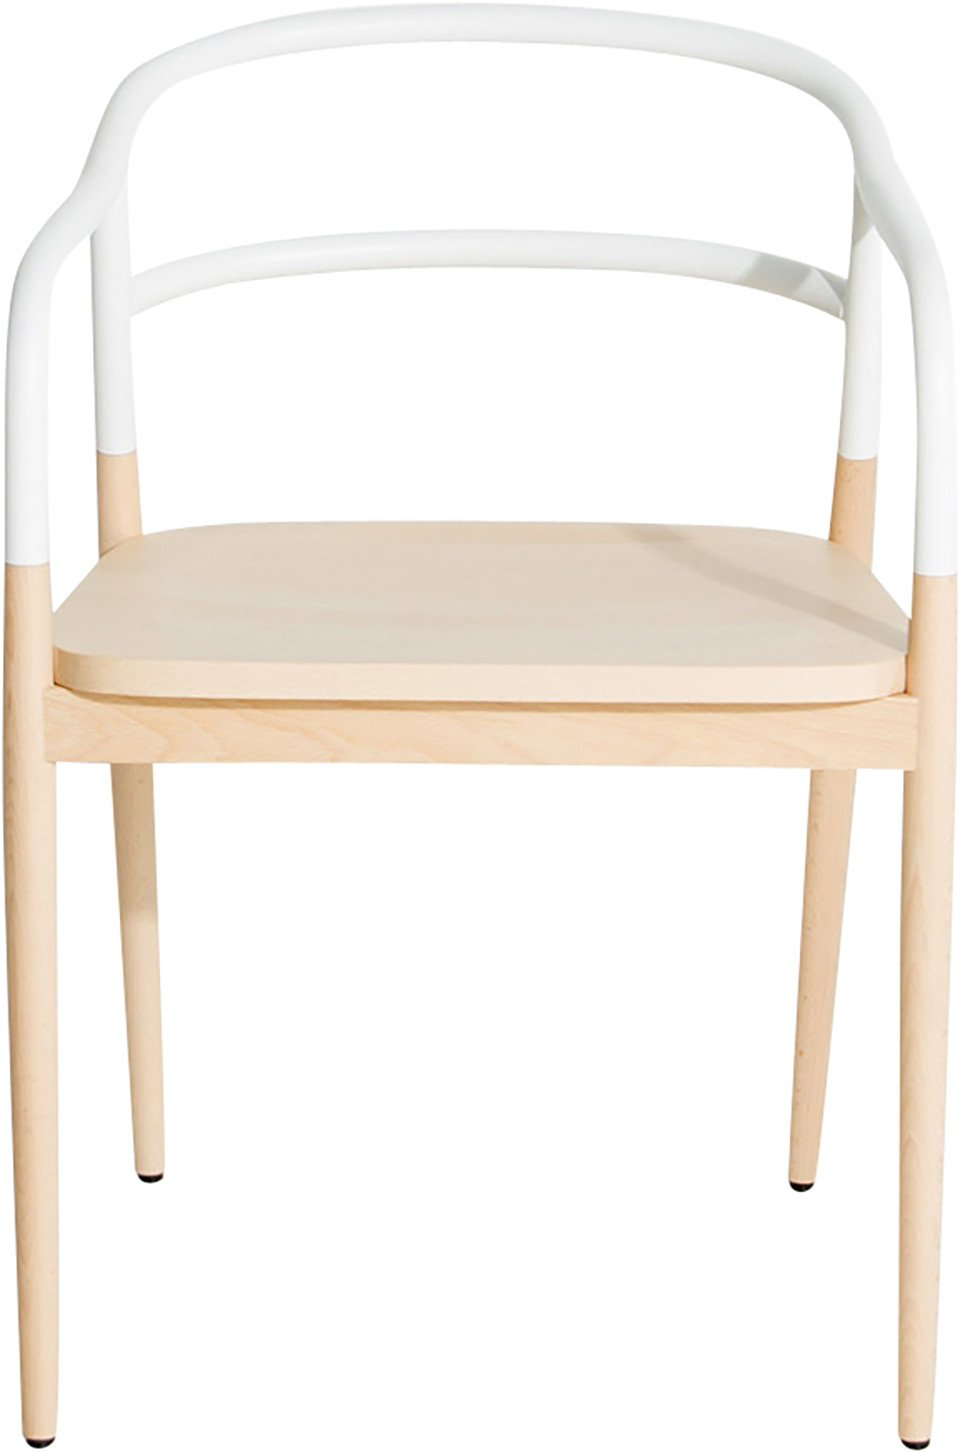 White Dojo Chair by A. Chhor i A. Logerot for Petite Friture